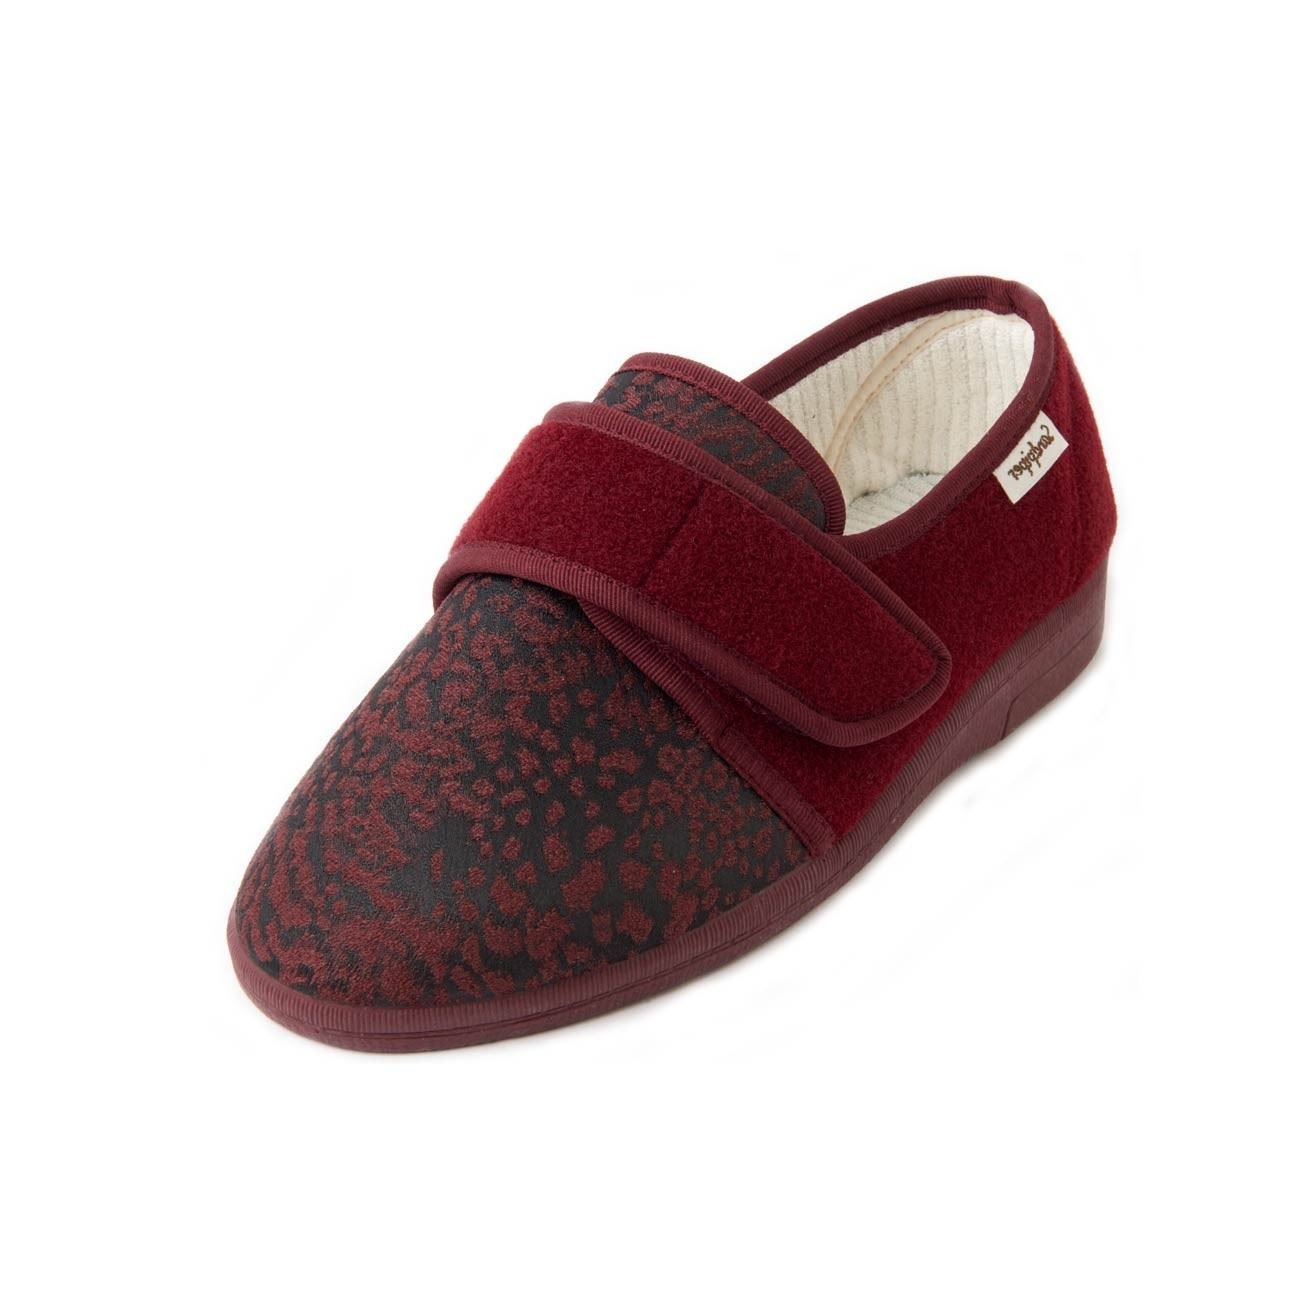 Sandpiper B01N0TBT3X , pour Chaussons pour femme Wine 19946 Print bb11b38 - latesttechnology.space